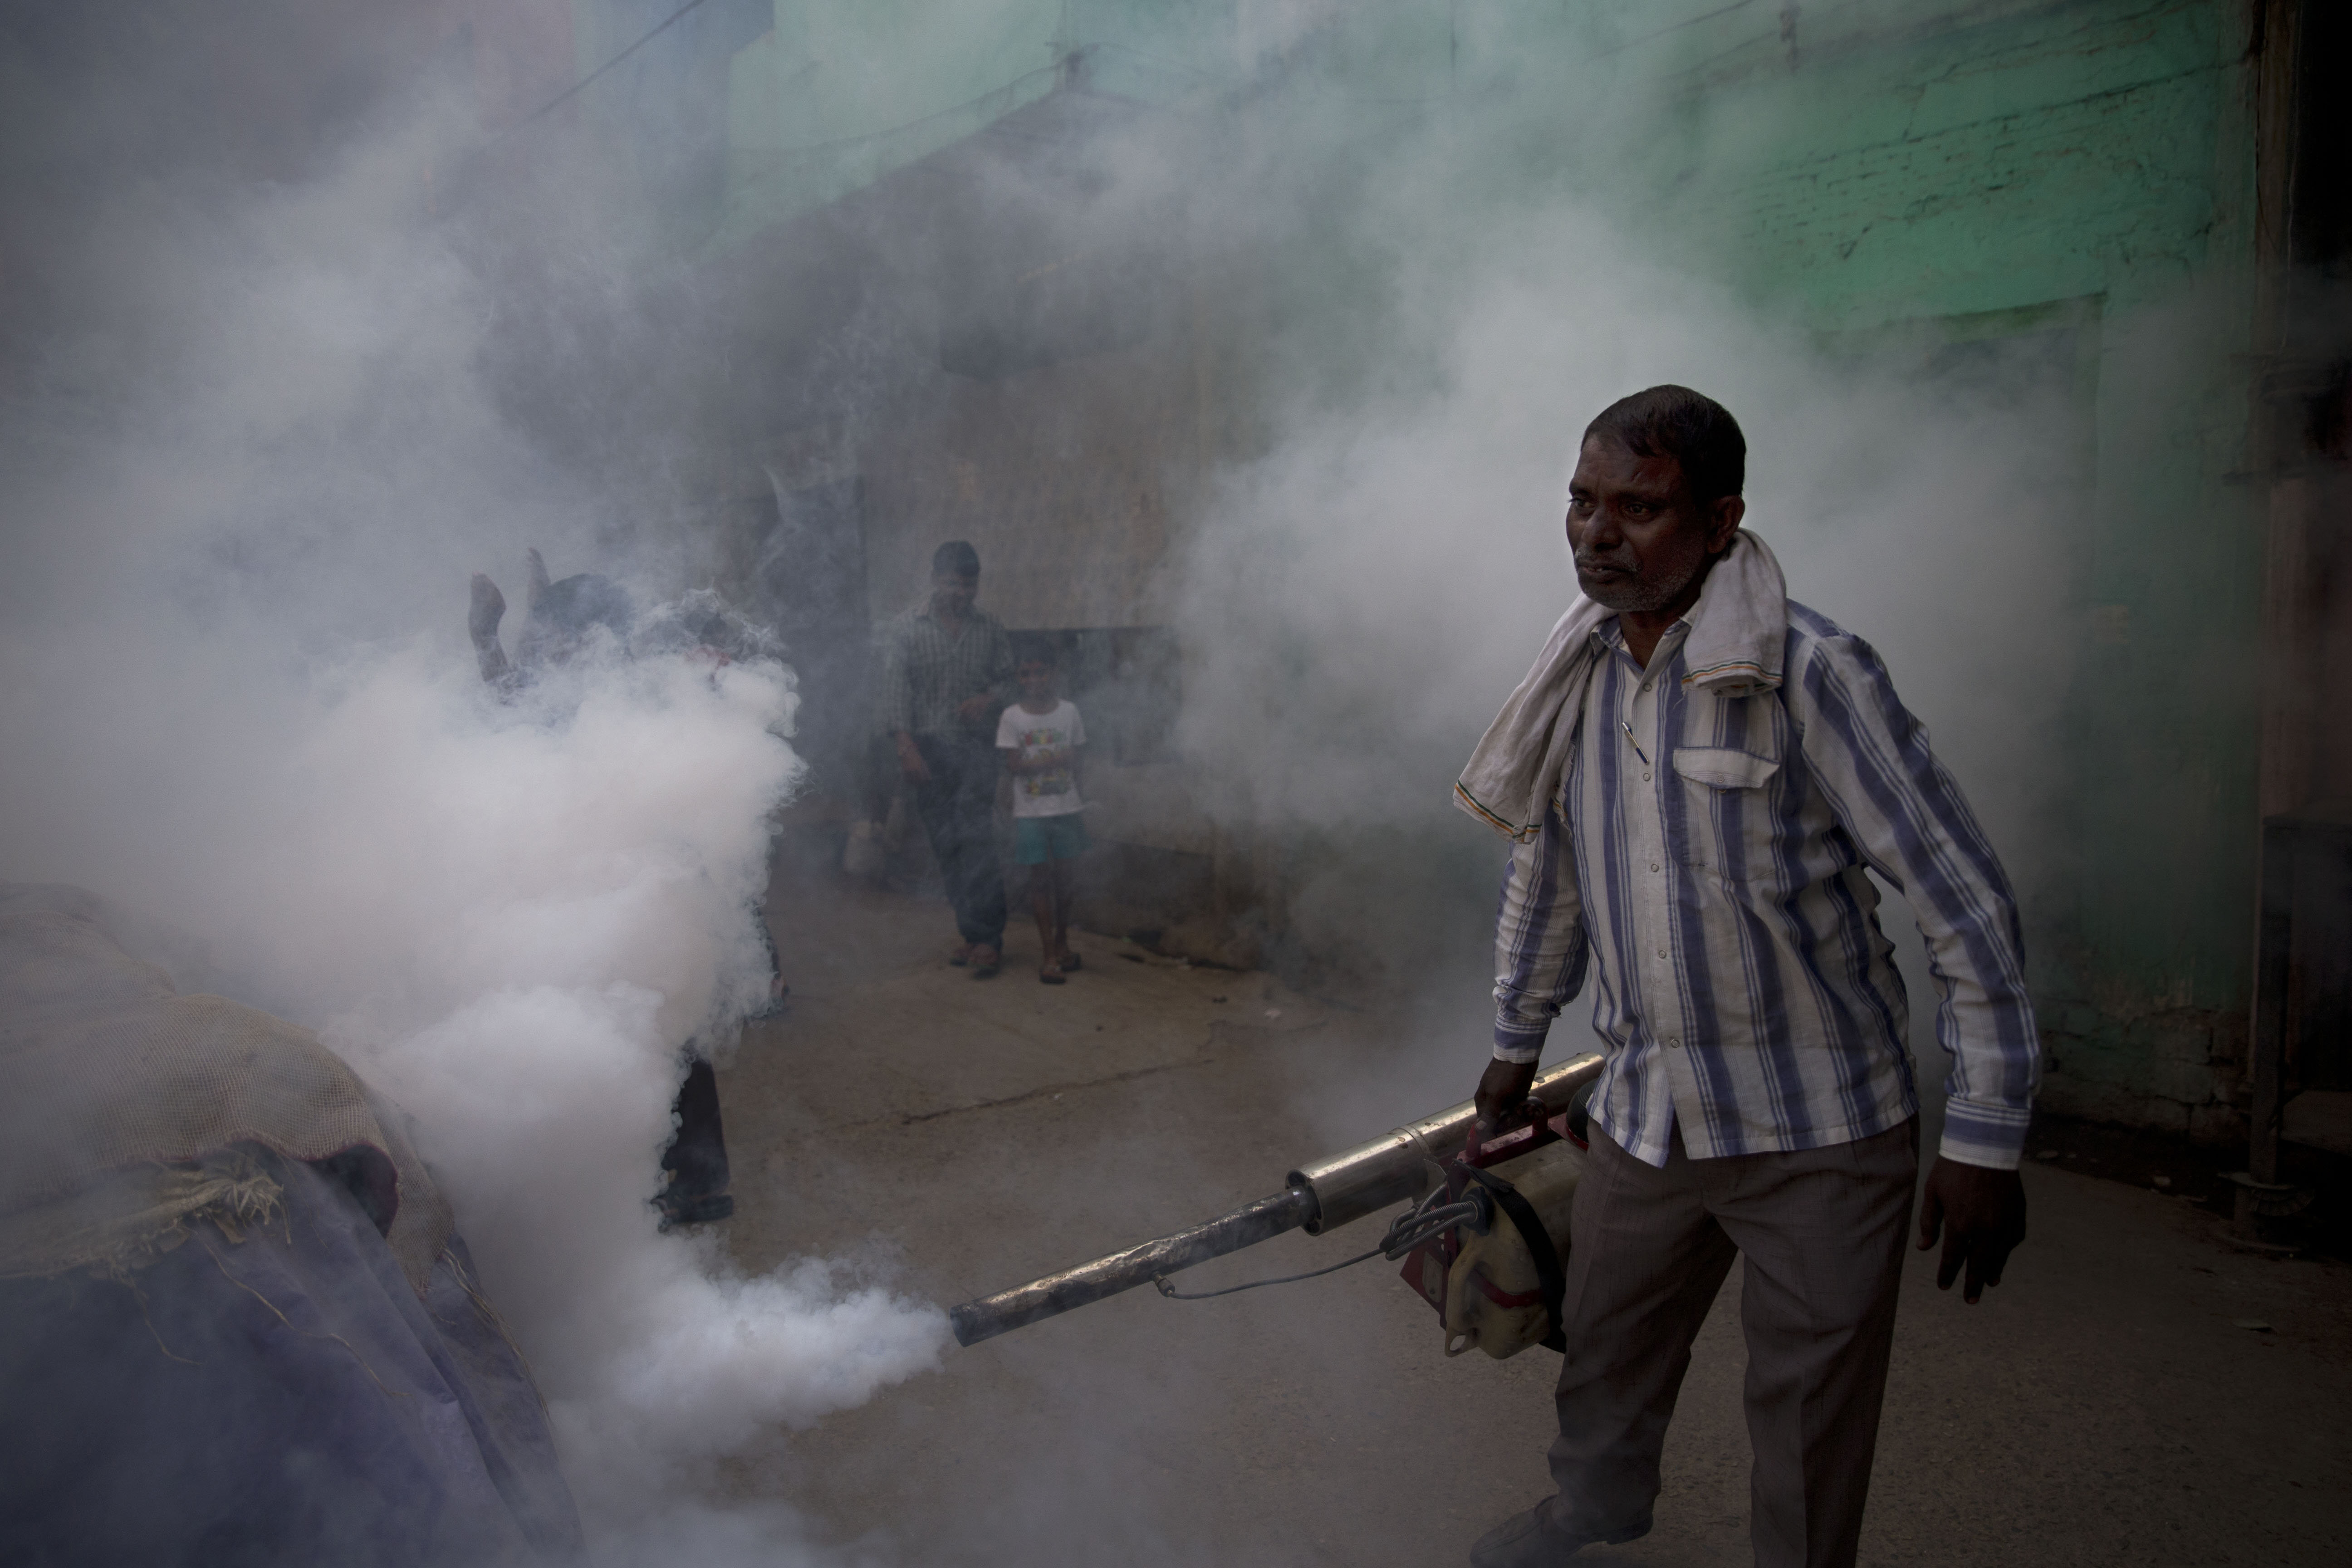 A municipal worker fumigates a residential area to prevent mosquitoes from breeding in New Delhi on Sept. 7, 2015